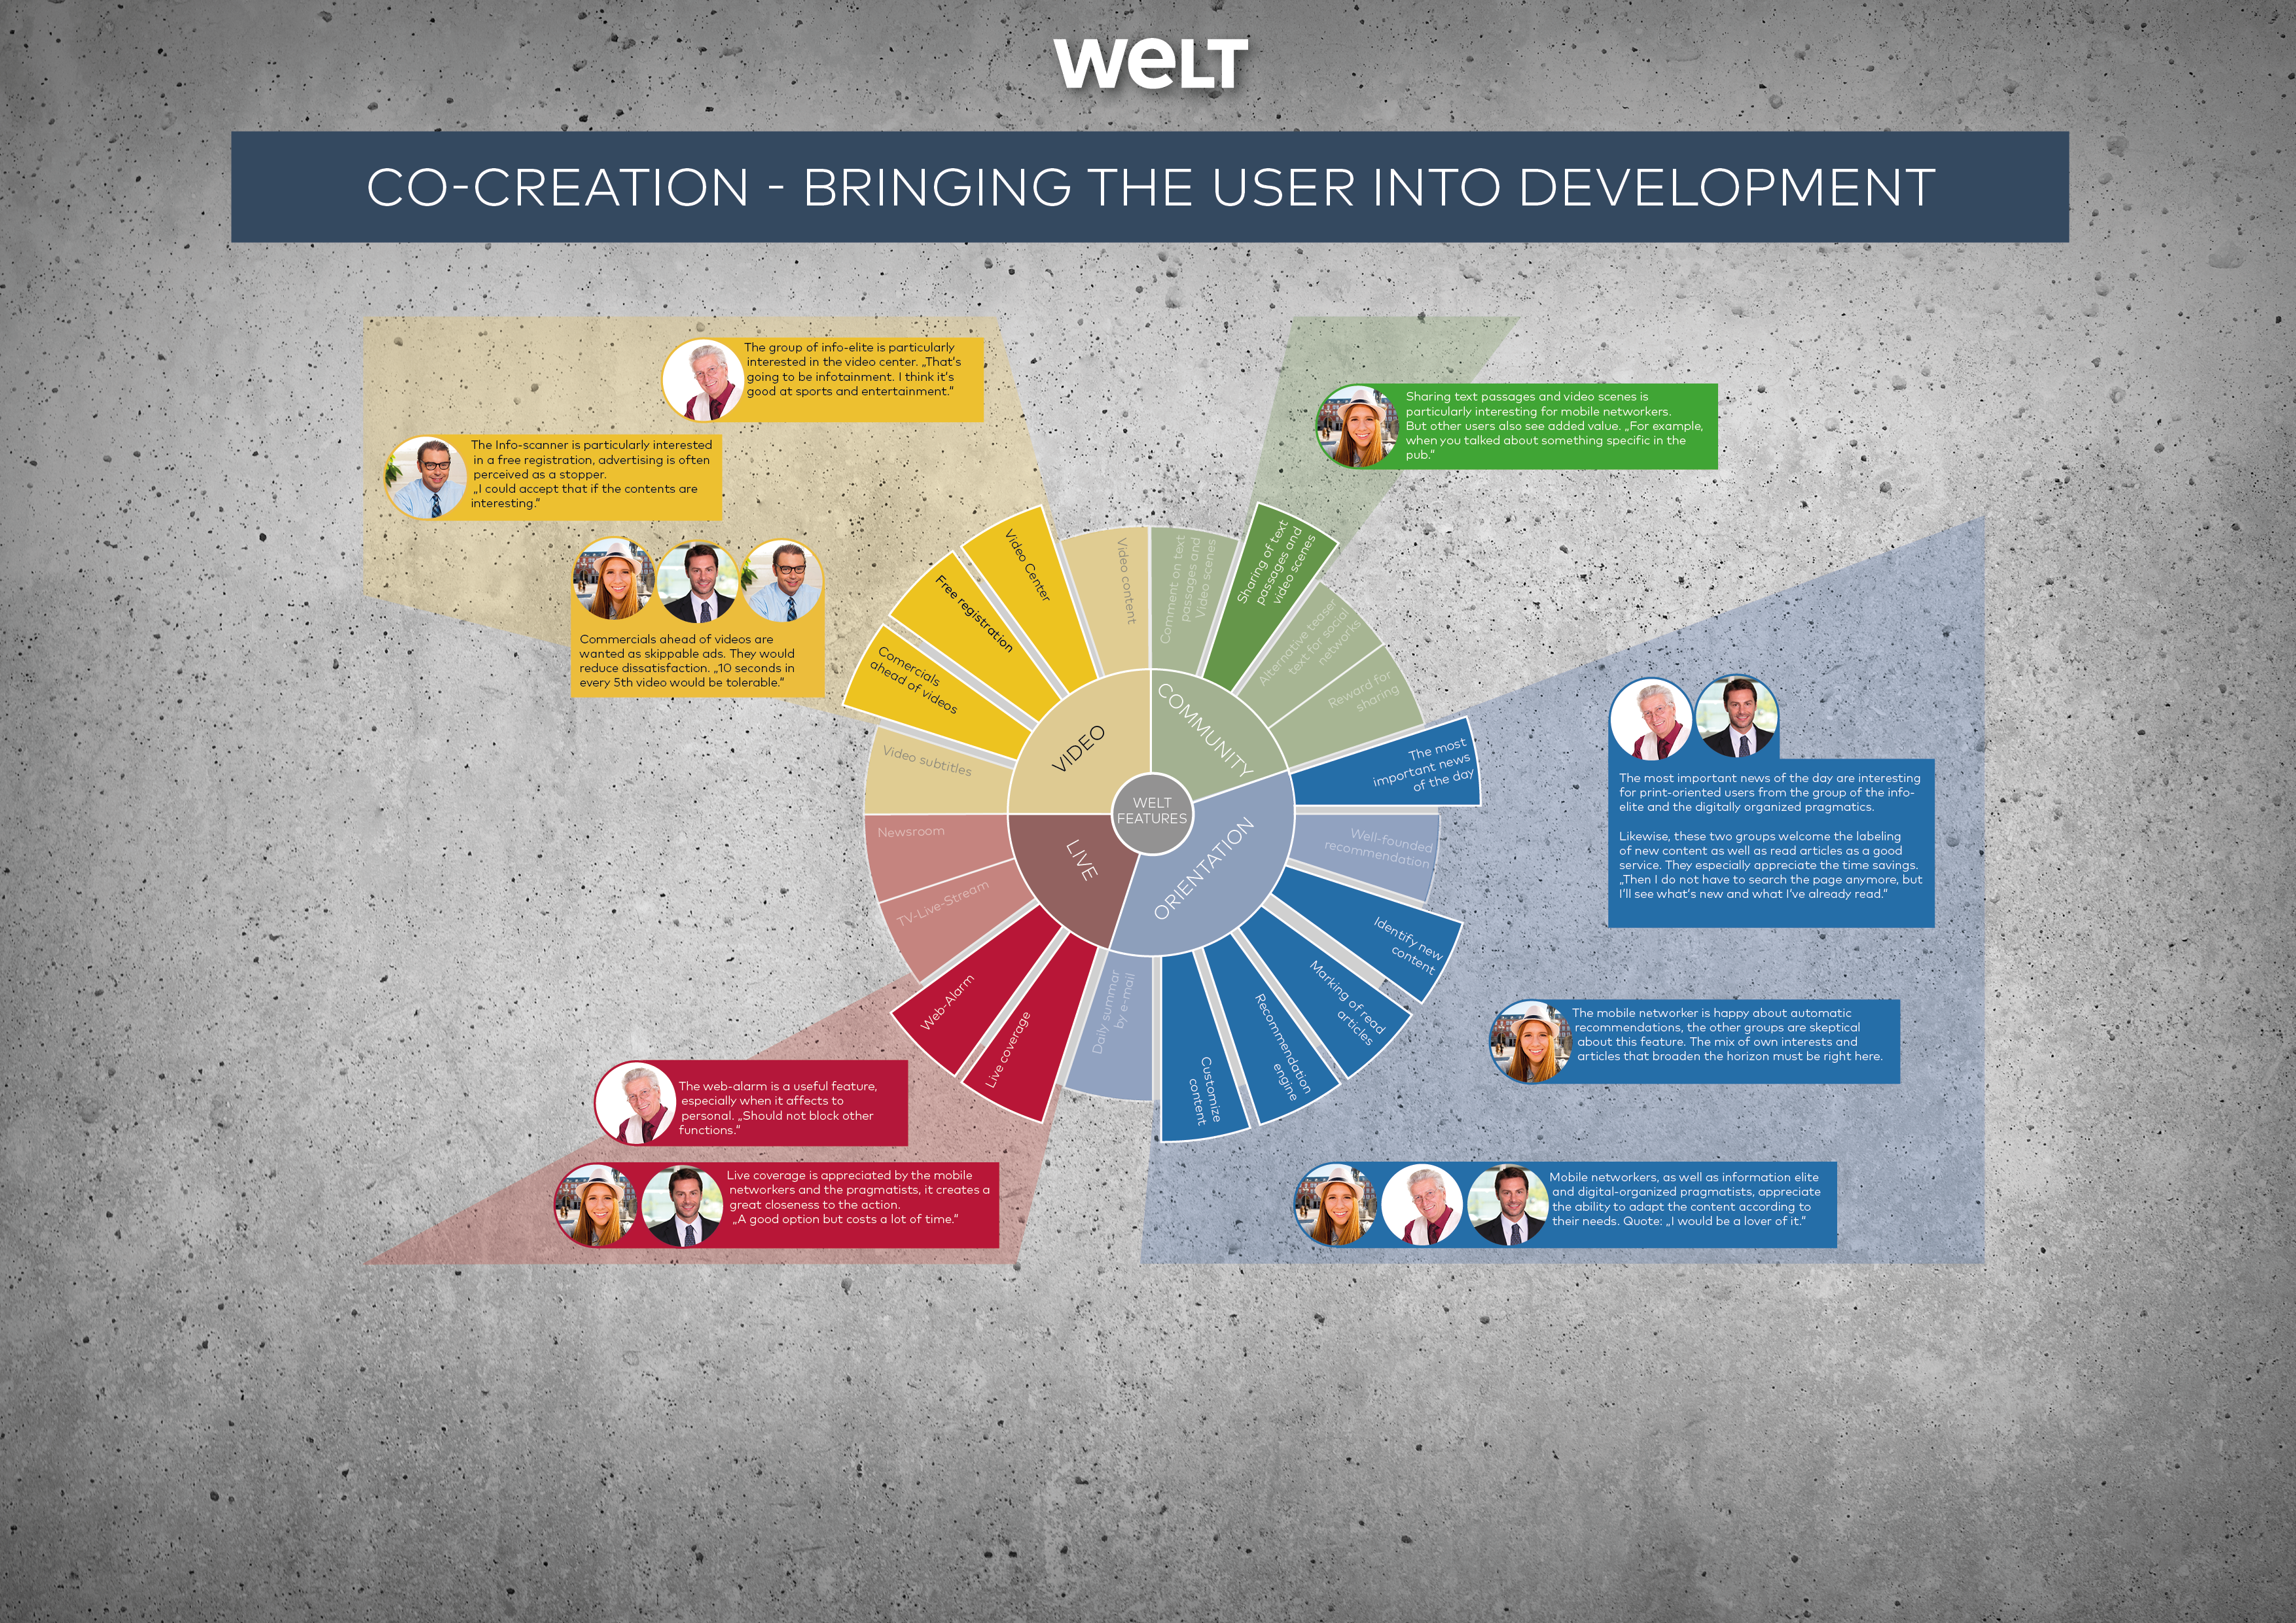 Co-creation - bringing the user into development